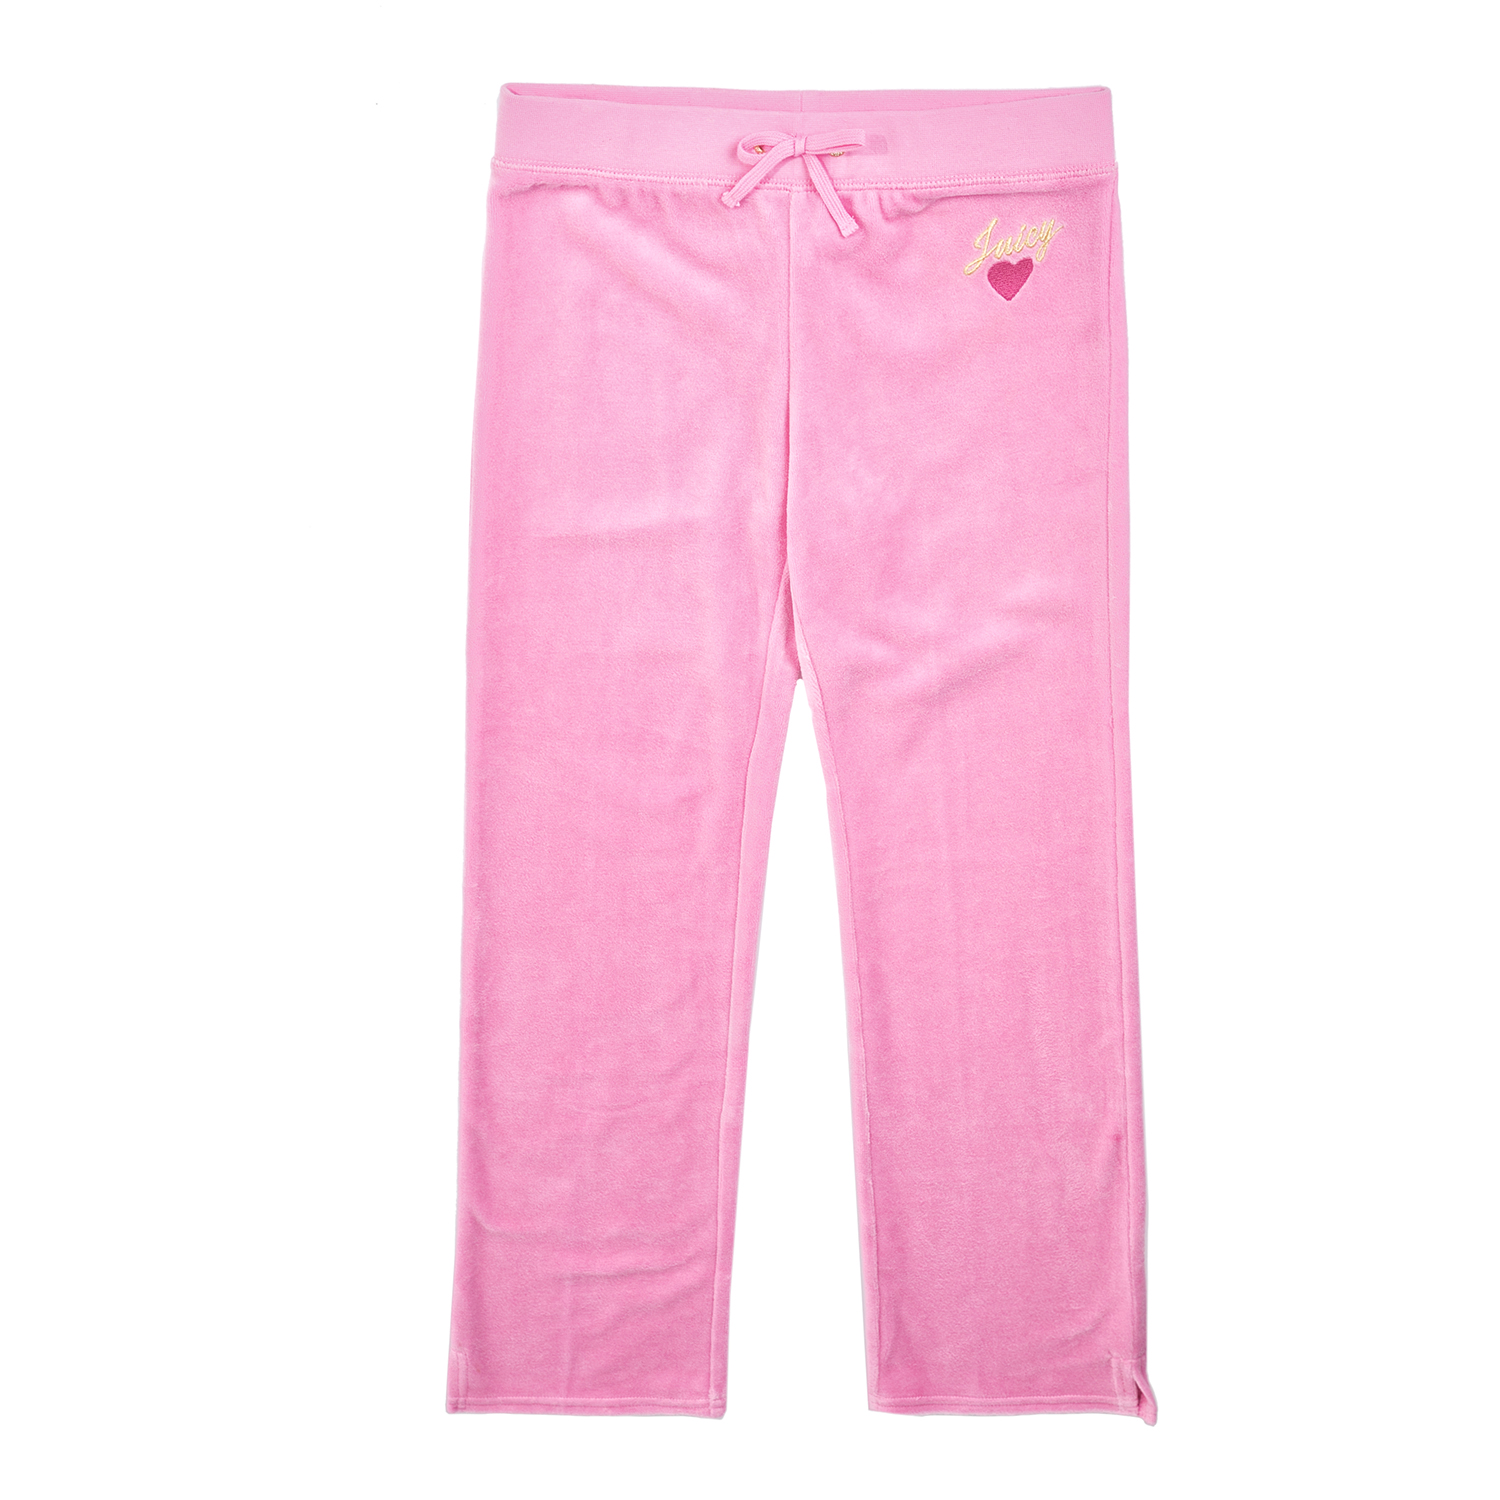 f366de8fe3e Juicy Couture Kids - Κοριτσίστικο Παντελόνι Φόρμας Juicy Couture Heart  Expressions Ροζ. Factory Outlet